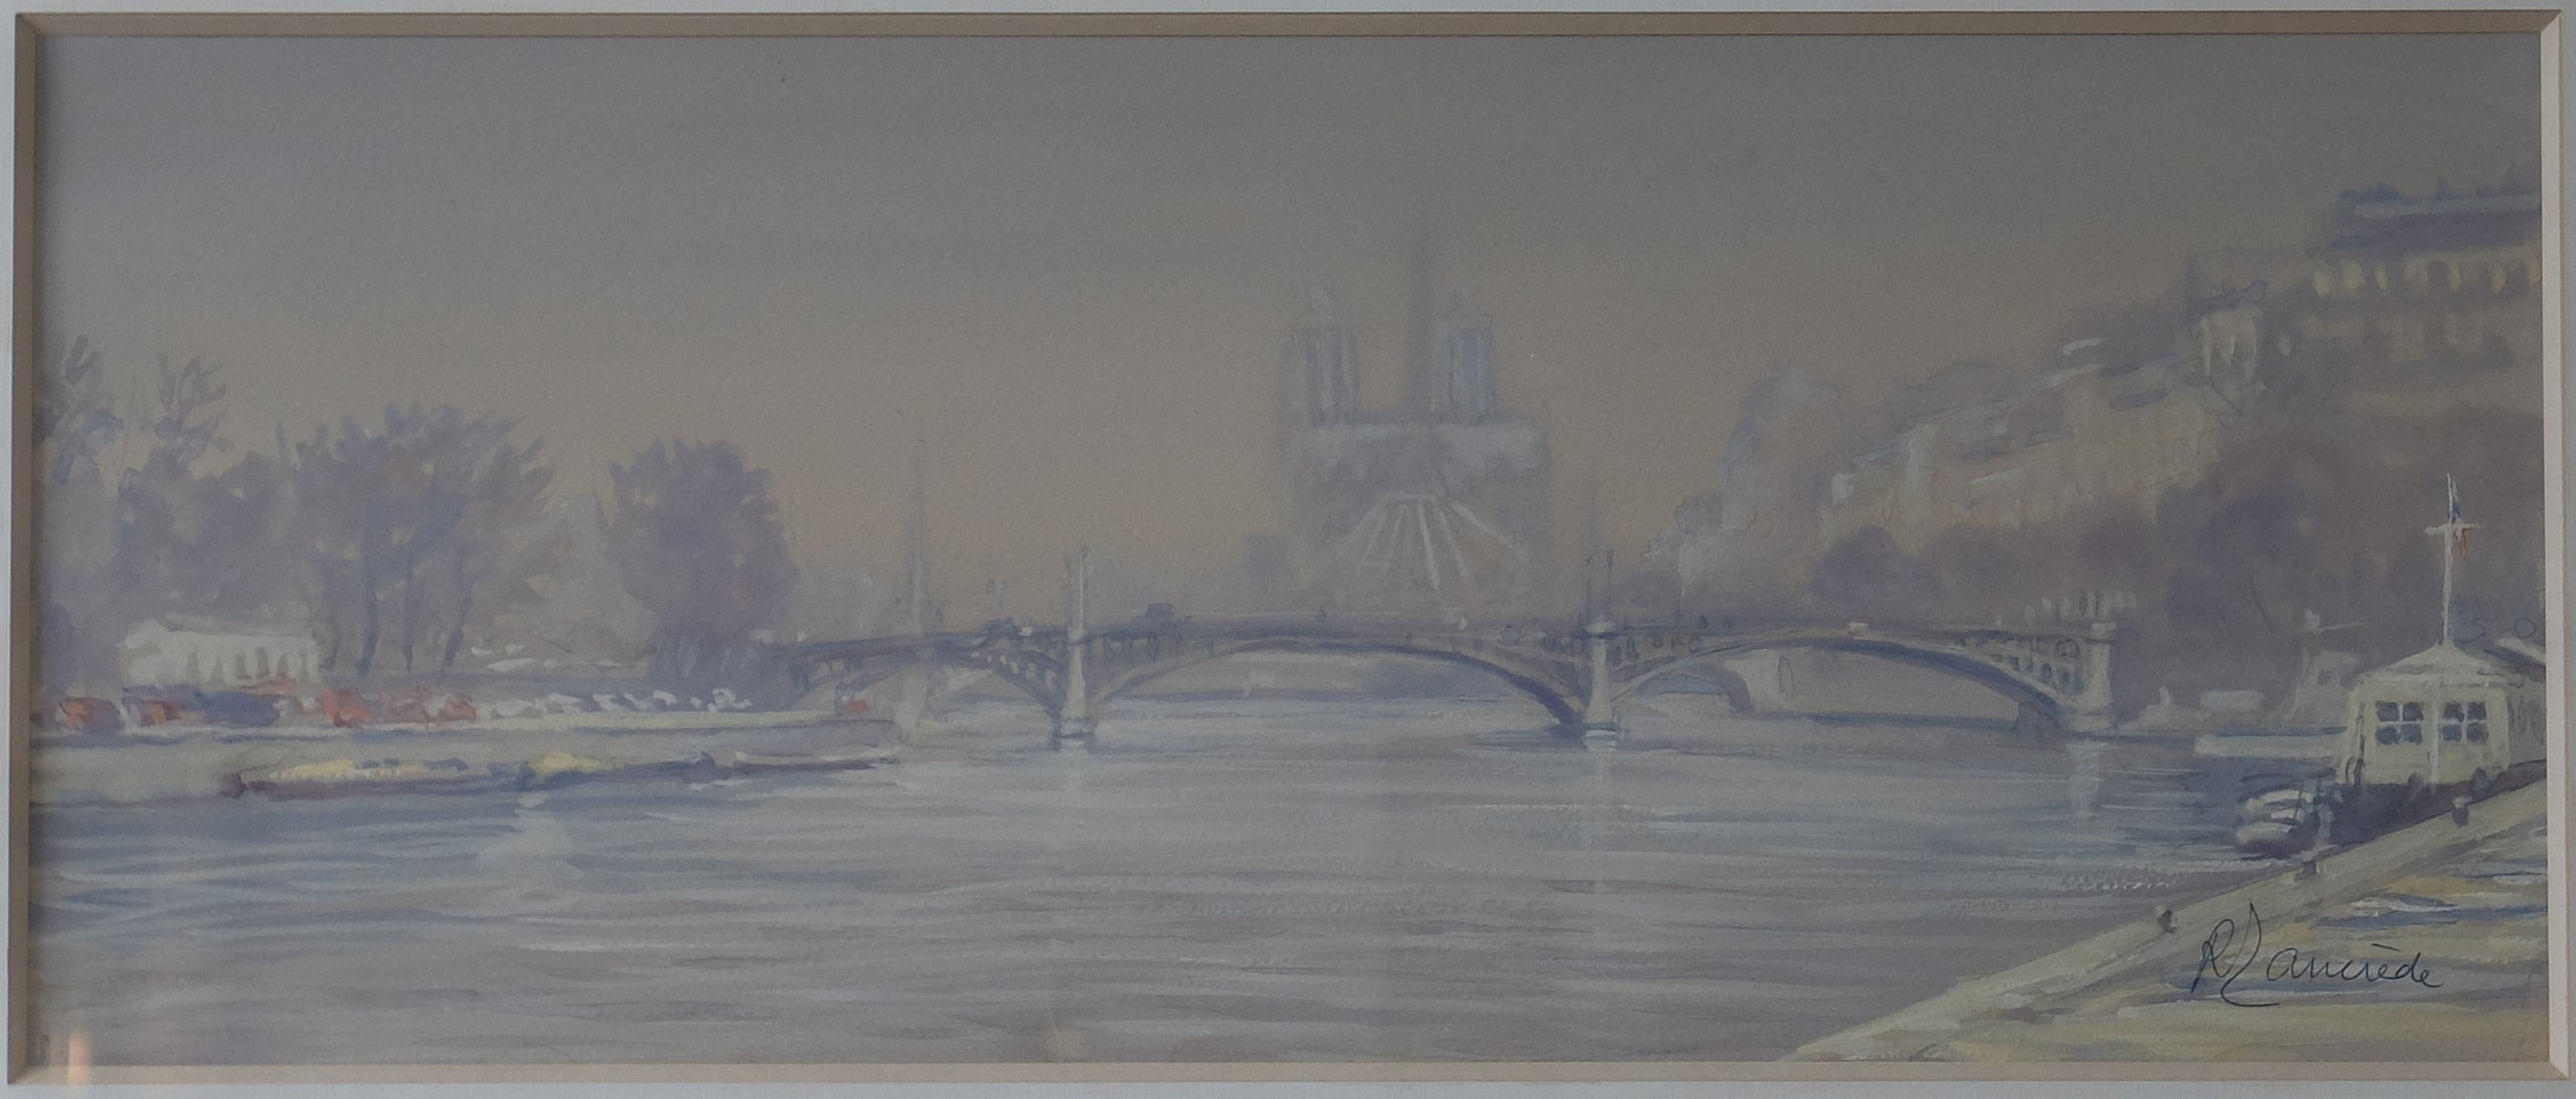 Original Paintings at Place Dauphine: Beautifully atmospheric watercolor from 1900's